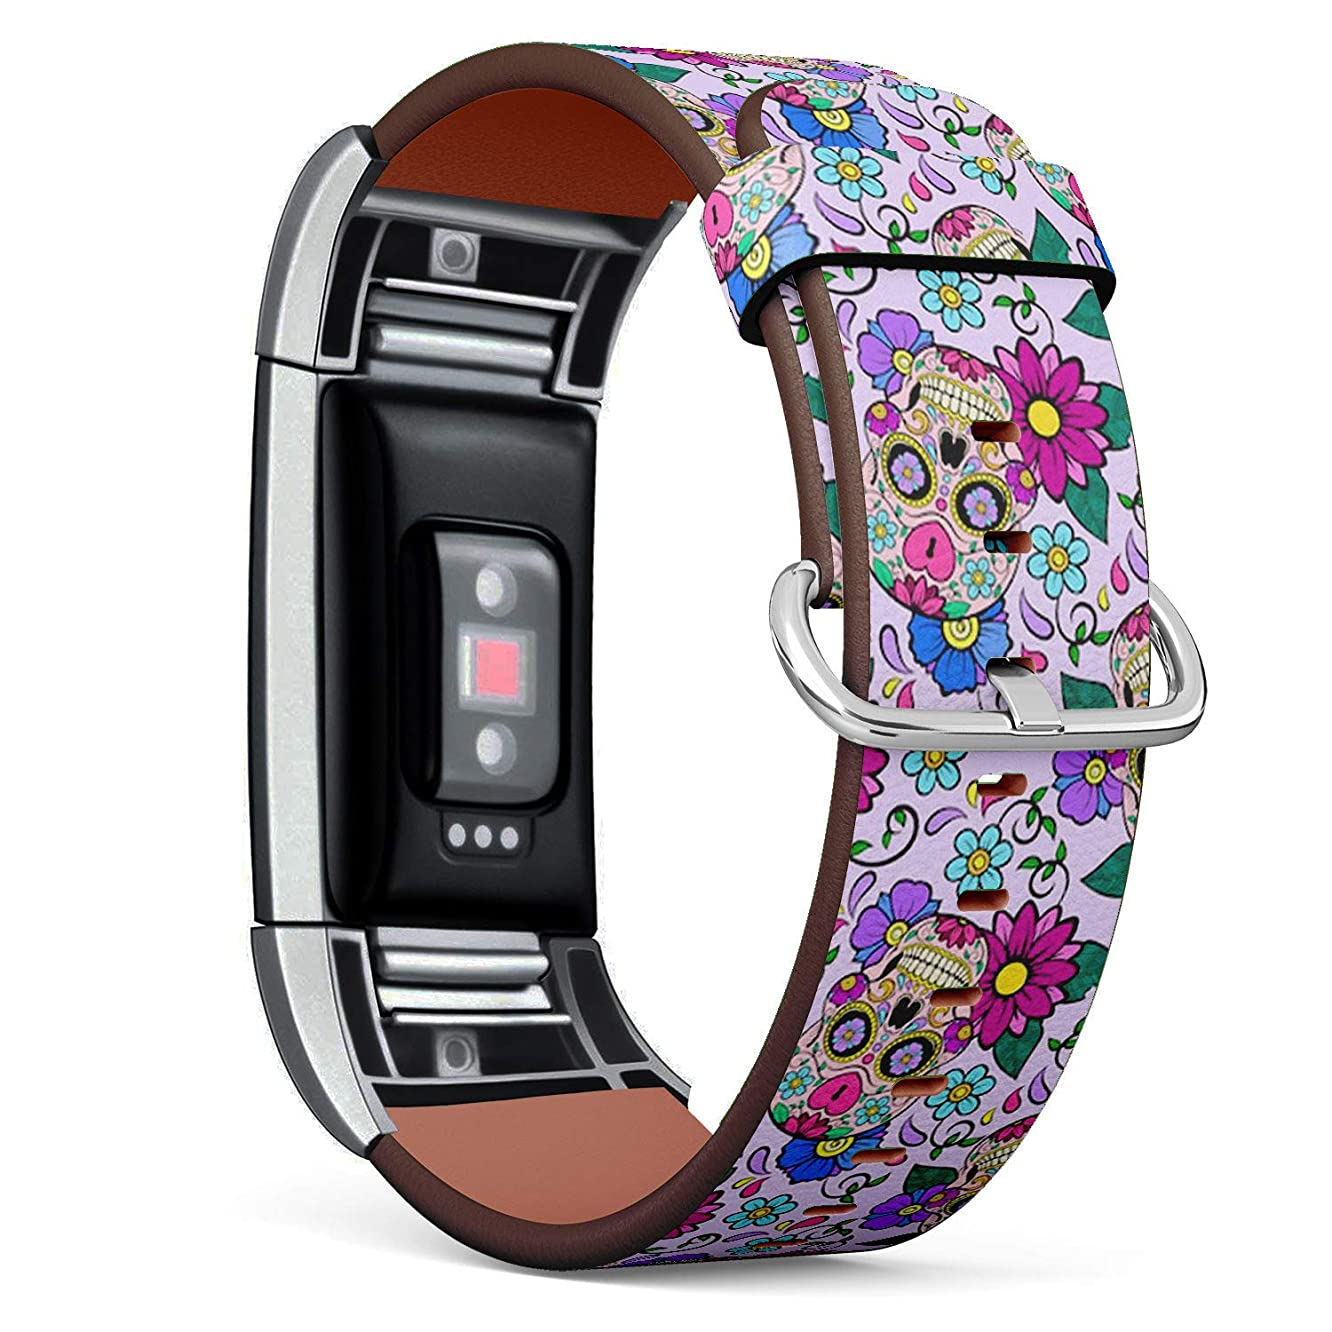 Compatible with Fitbit Charge 2 - Leather Watch Wrist Band Strap Bracelet with Stainless Steel Clasp and Adapters (Festive Sugar Skulls Heart)